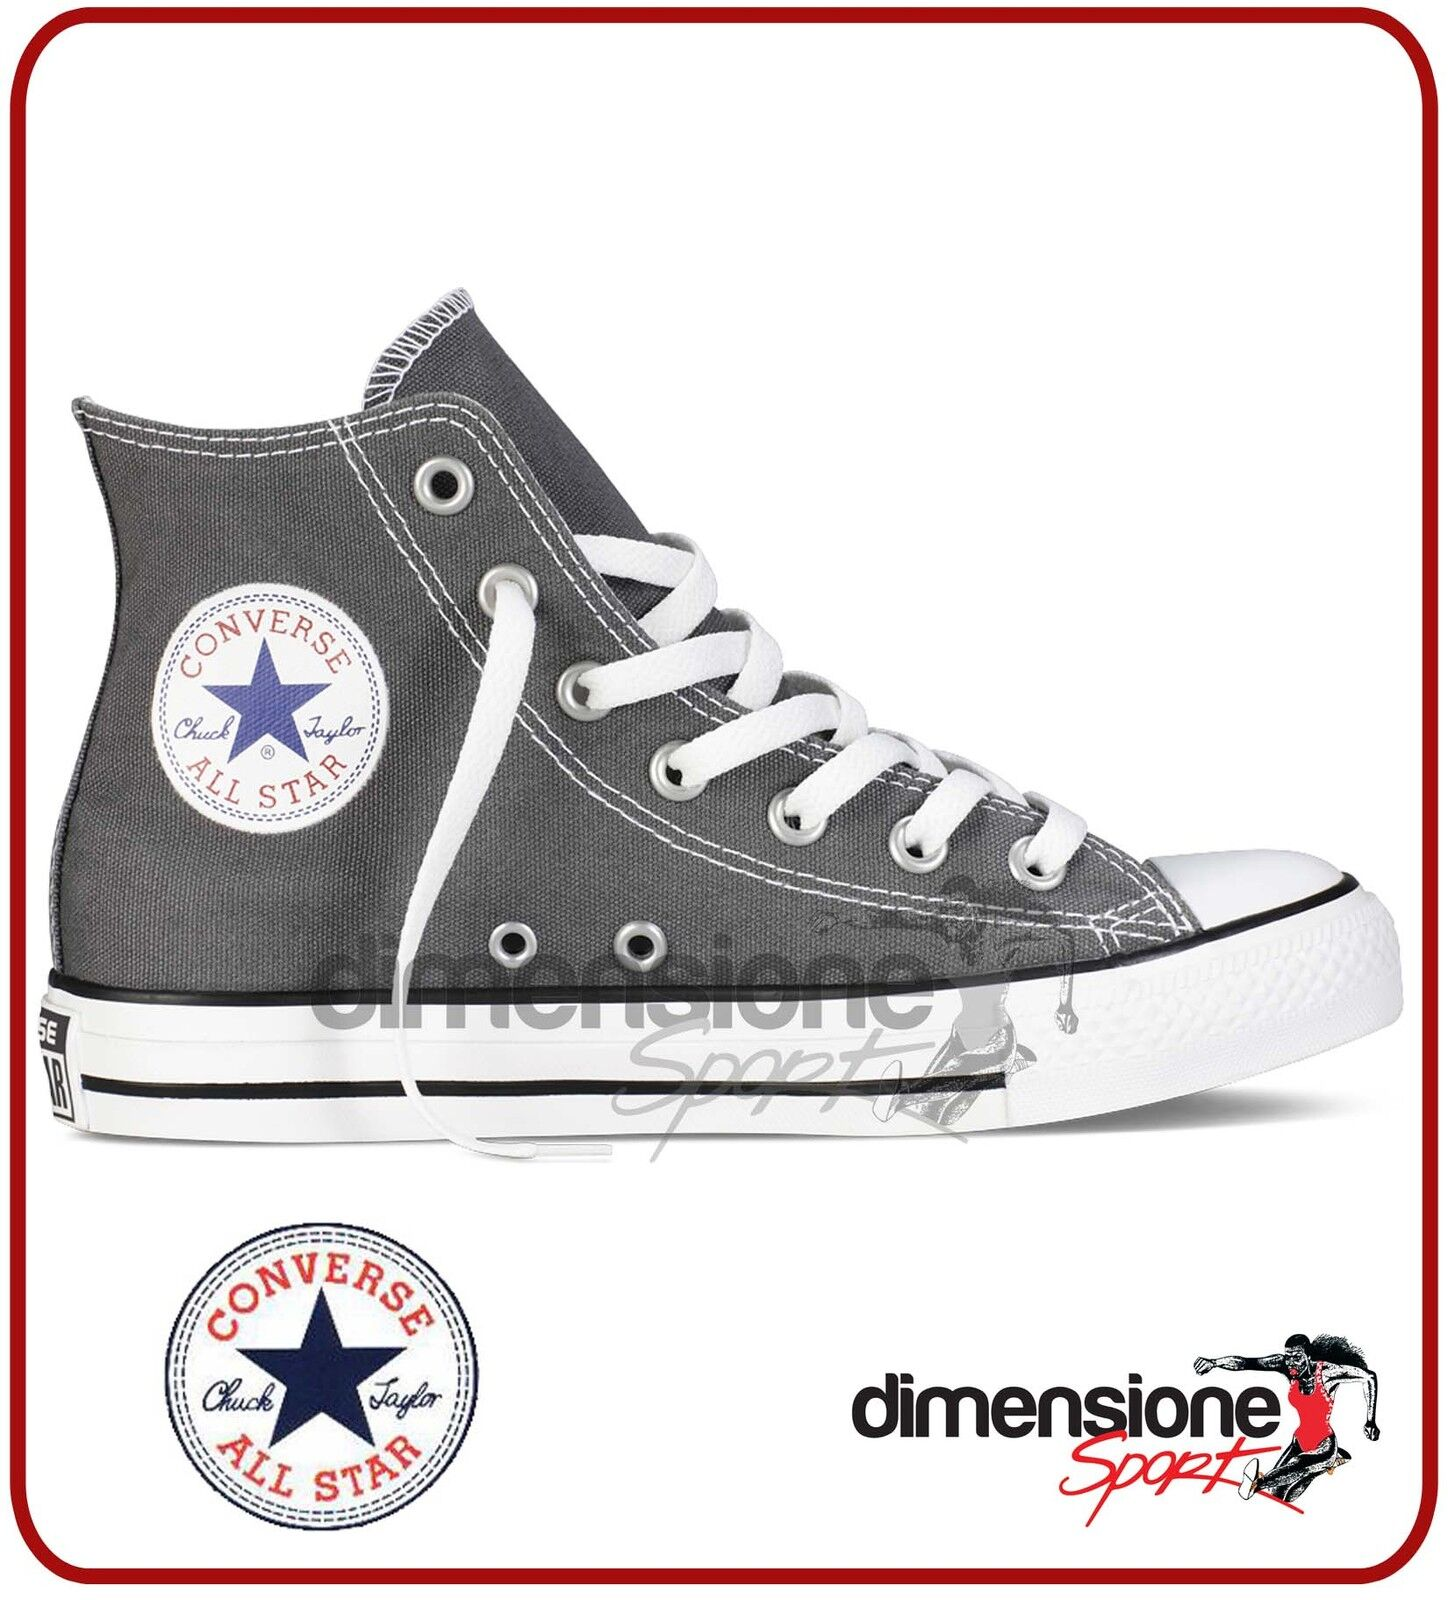 CONVERSE ALL STAR ALTE grigio TG. 37 US 4,5 grigio ALTE 1J793 SEASONAL CANVAS CHARCOAL SHOES dbd5d0